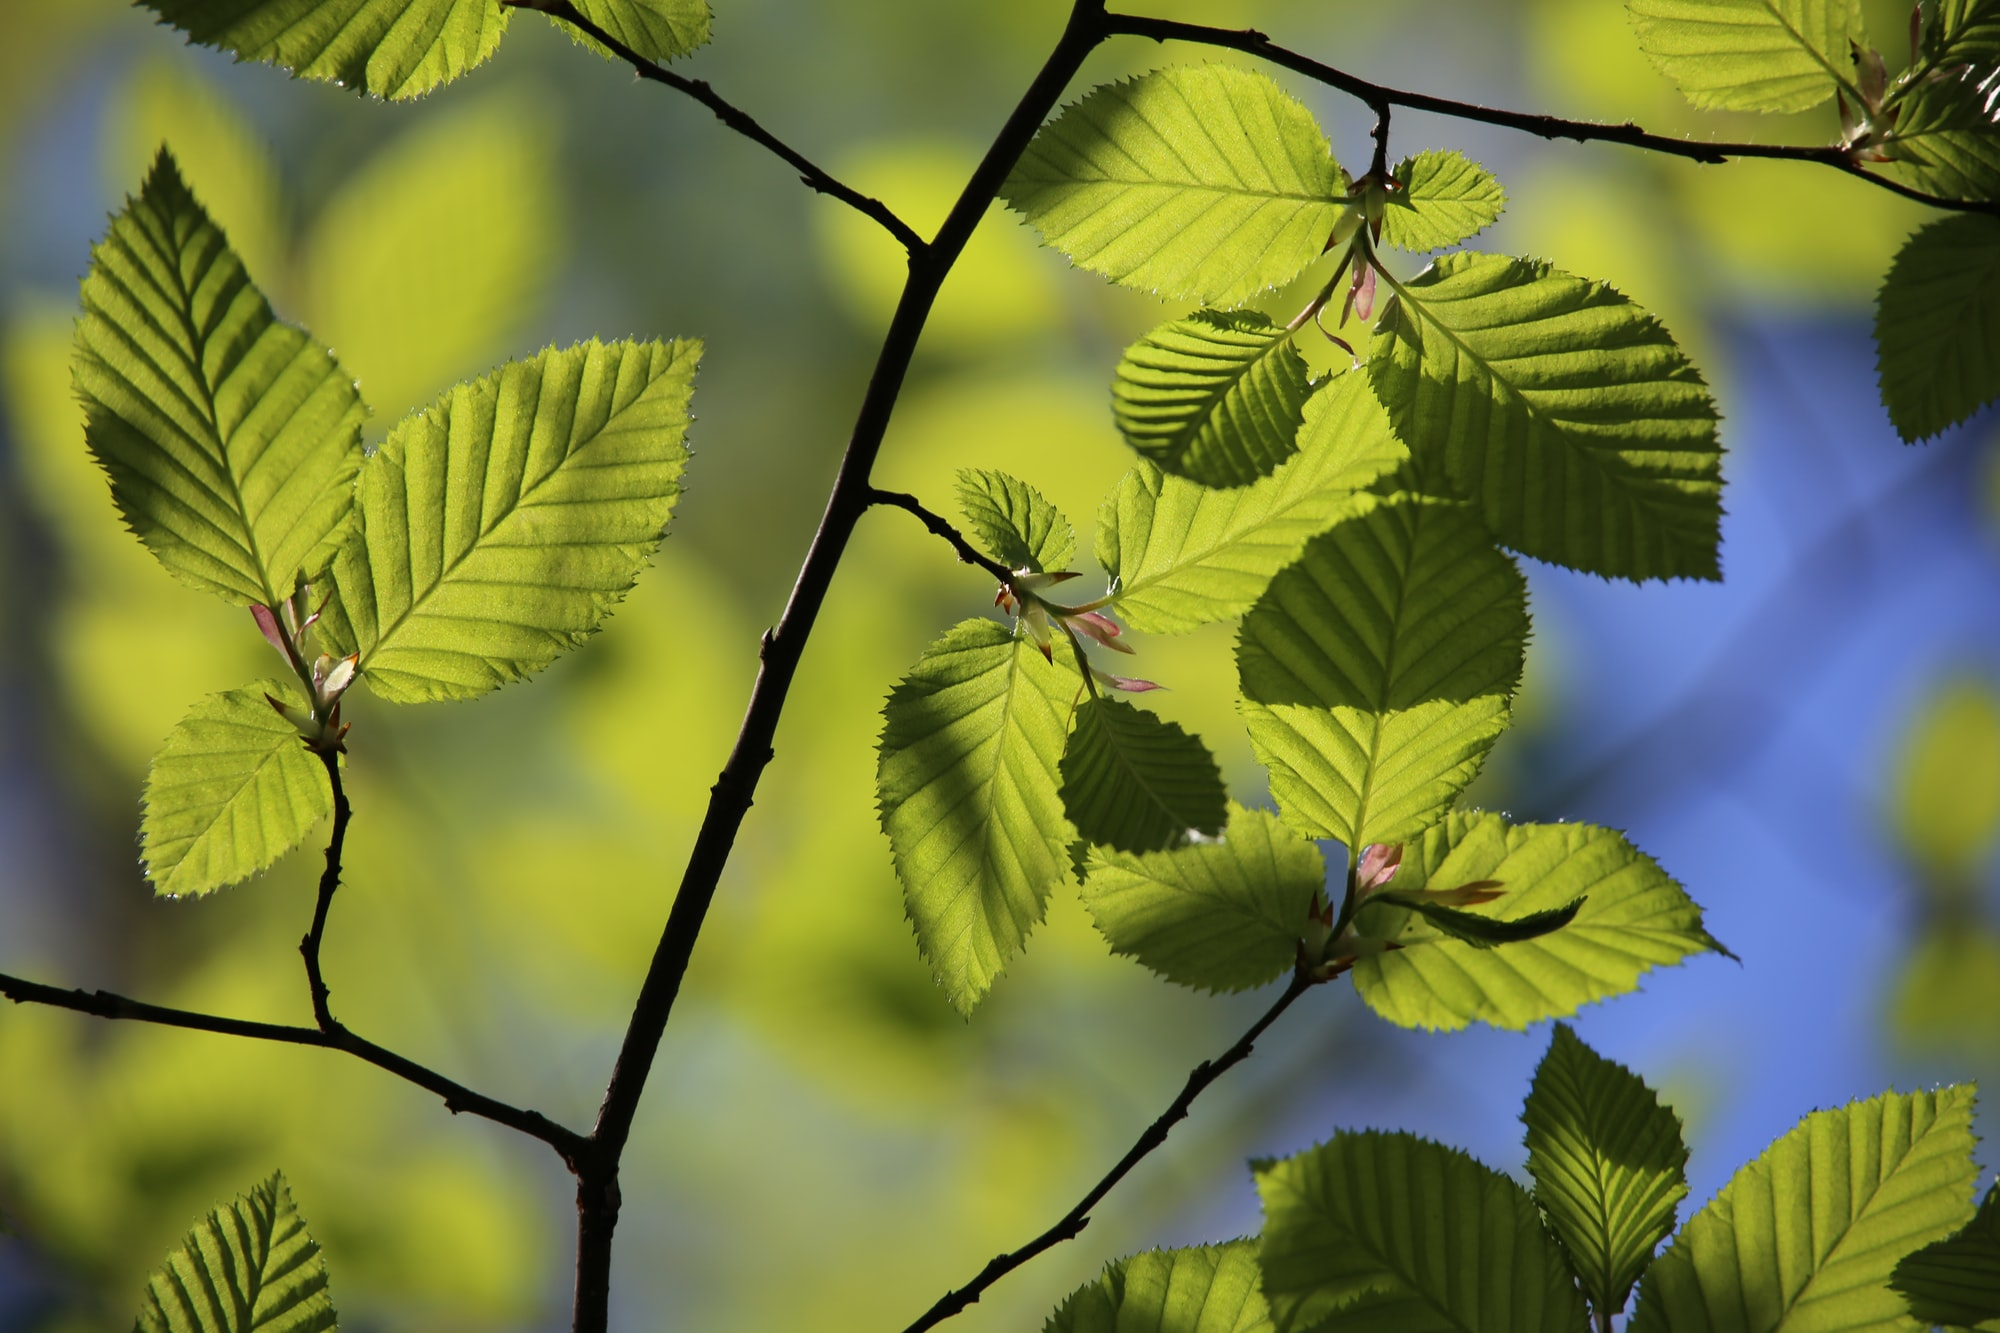 The wonder of creation: Fresh green beech leaves in the spring sun